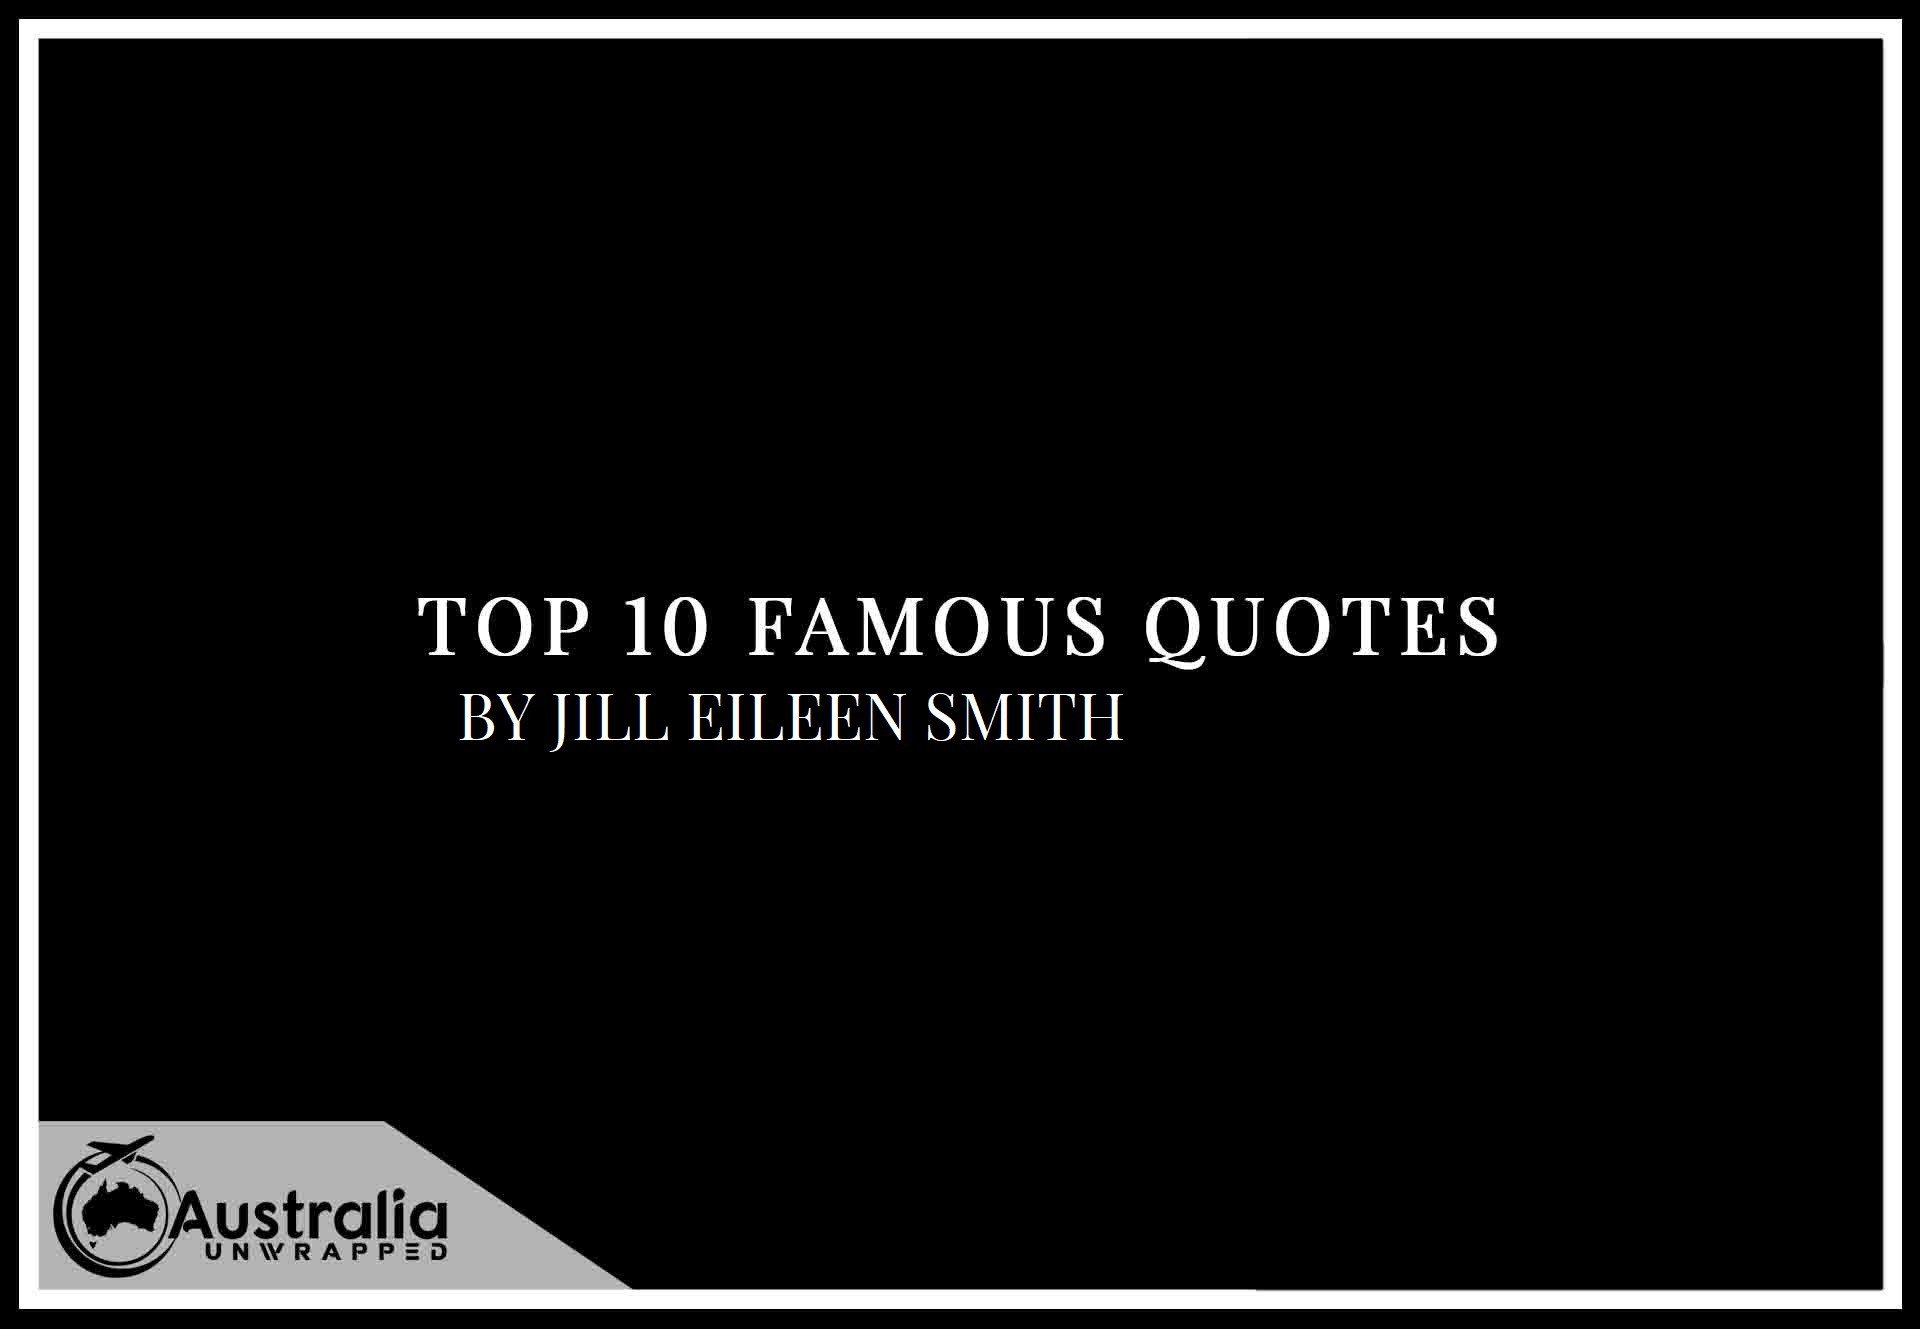 Top 10 Famous Quotes by Author Jill Eileen Smith